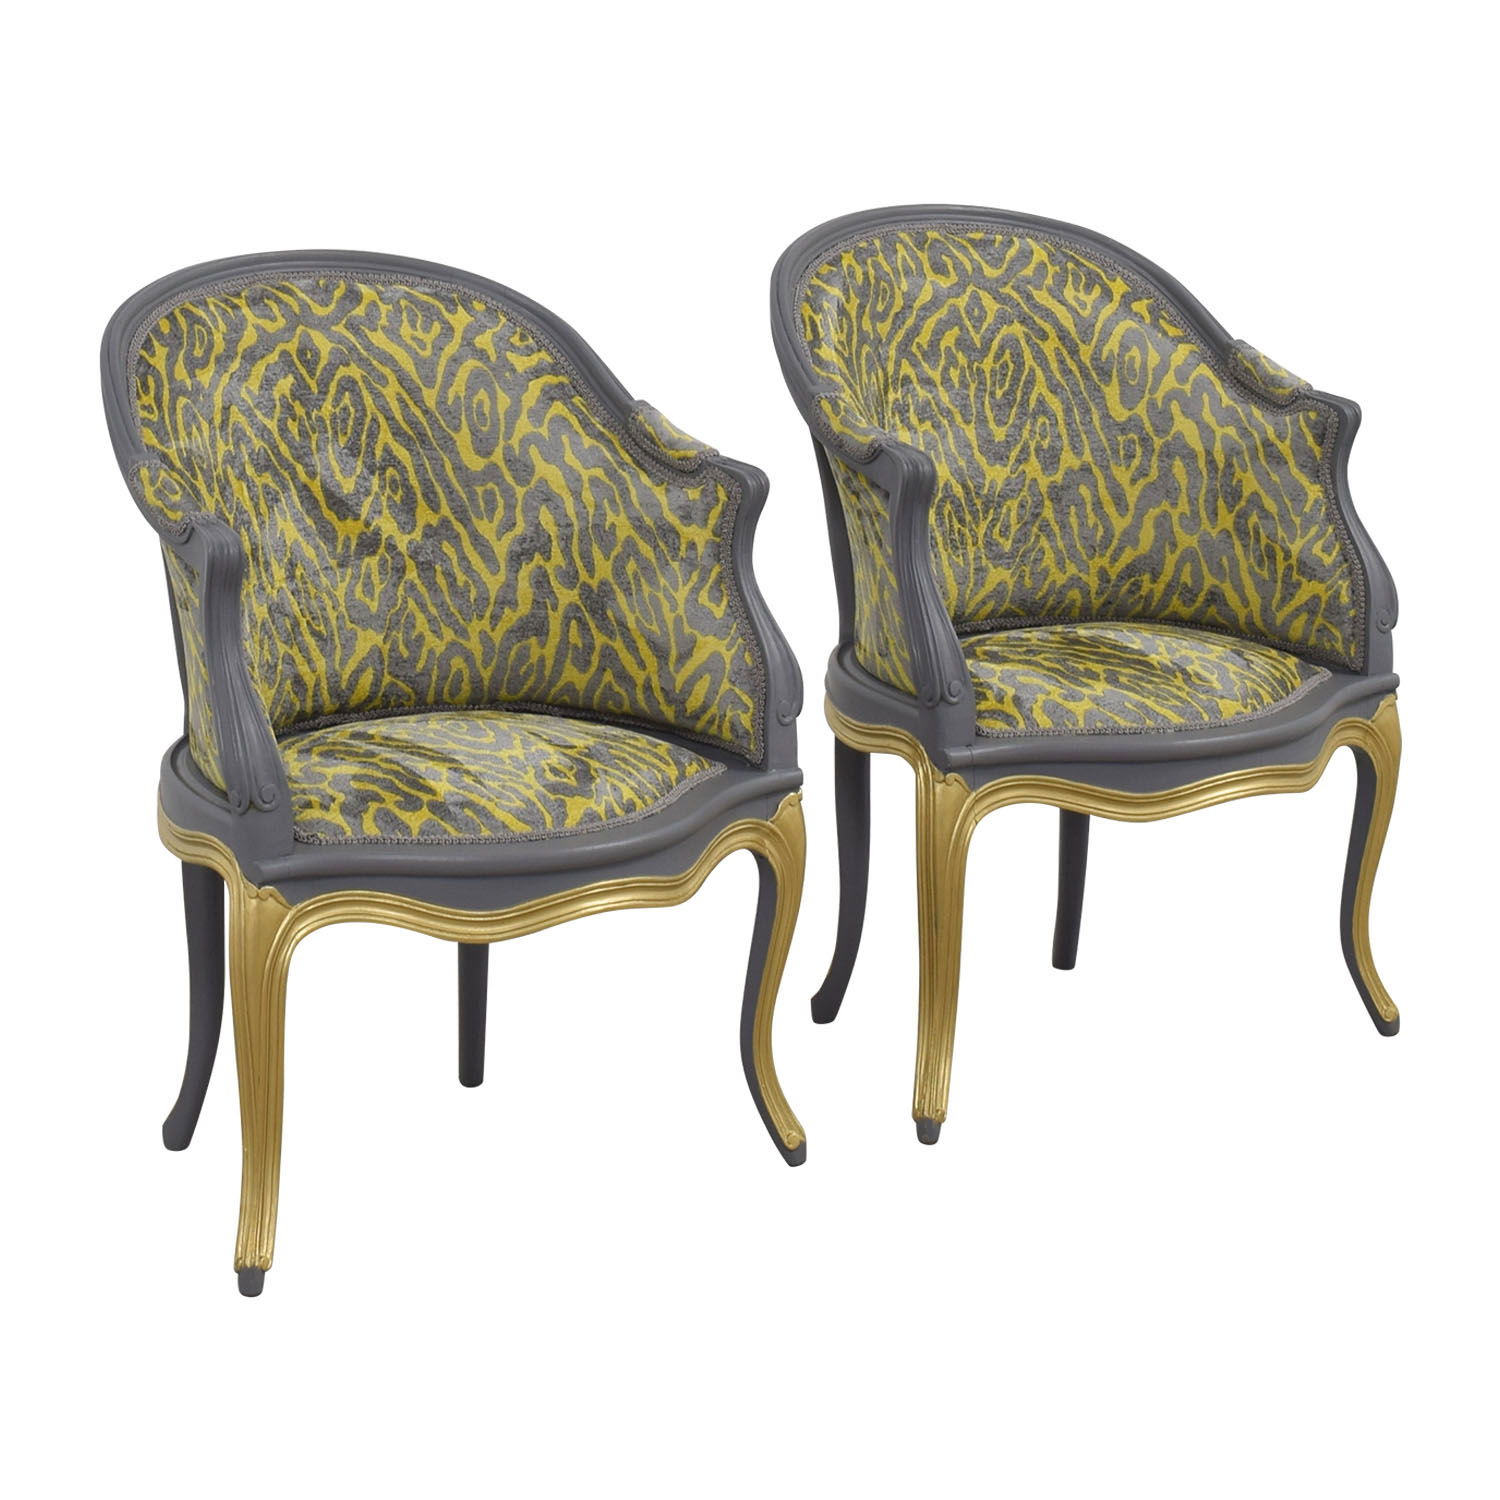 Country French Grey and Yellow Accent Chairs Chairs